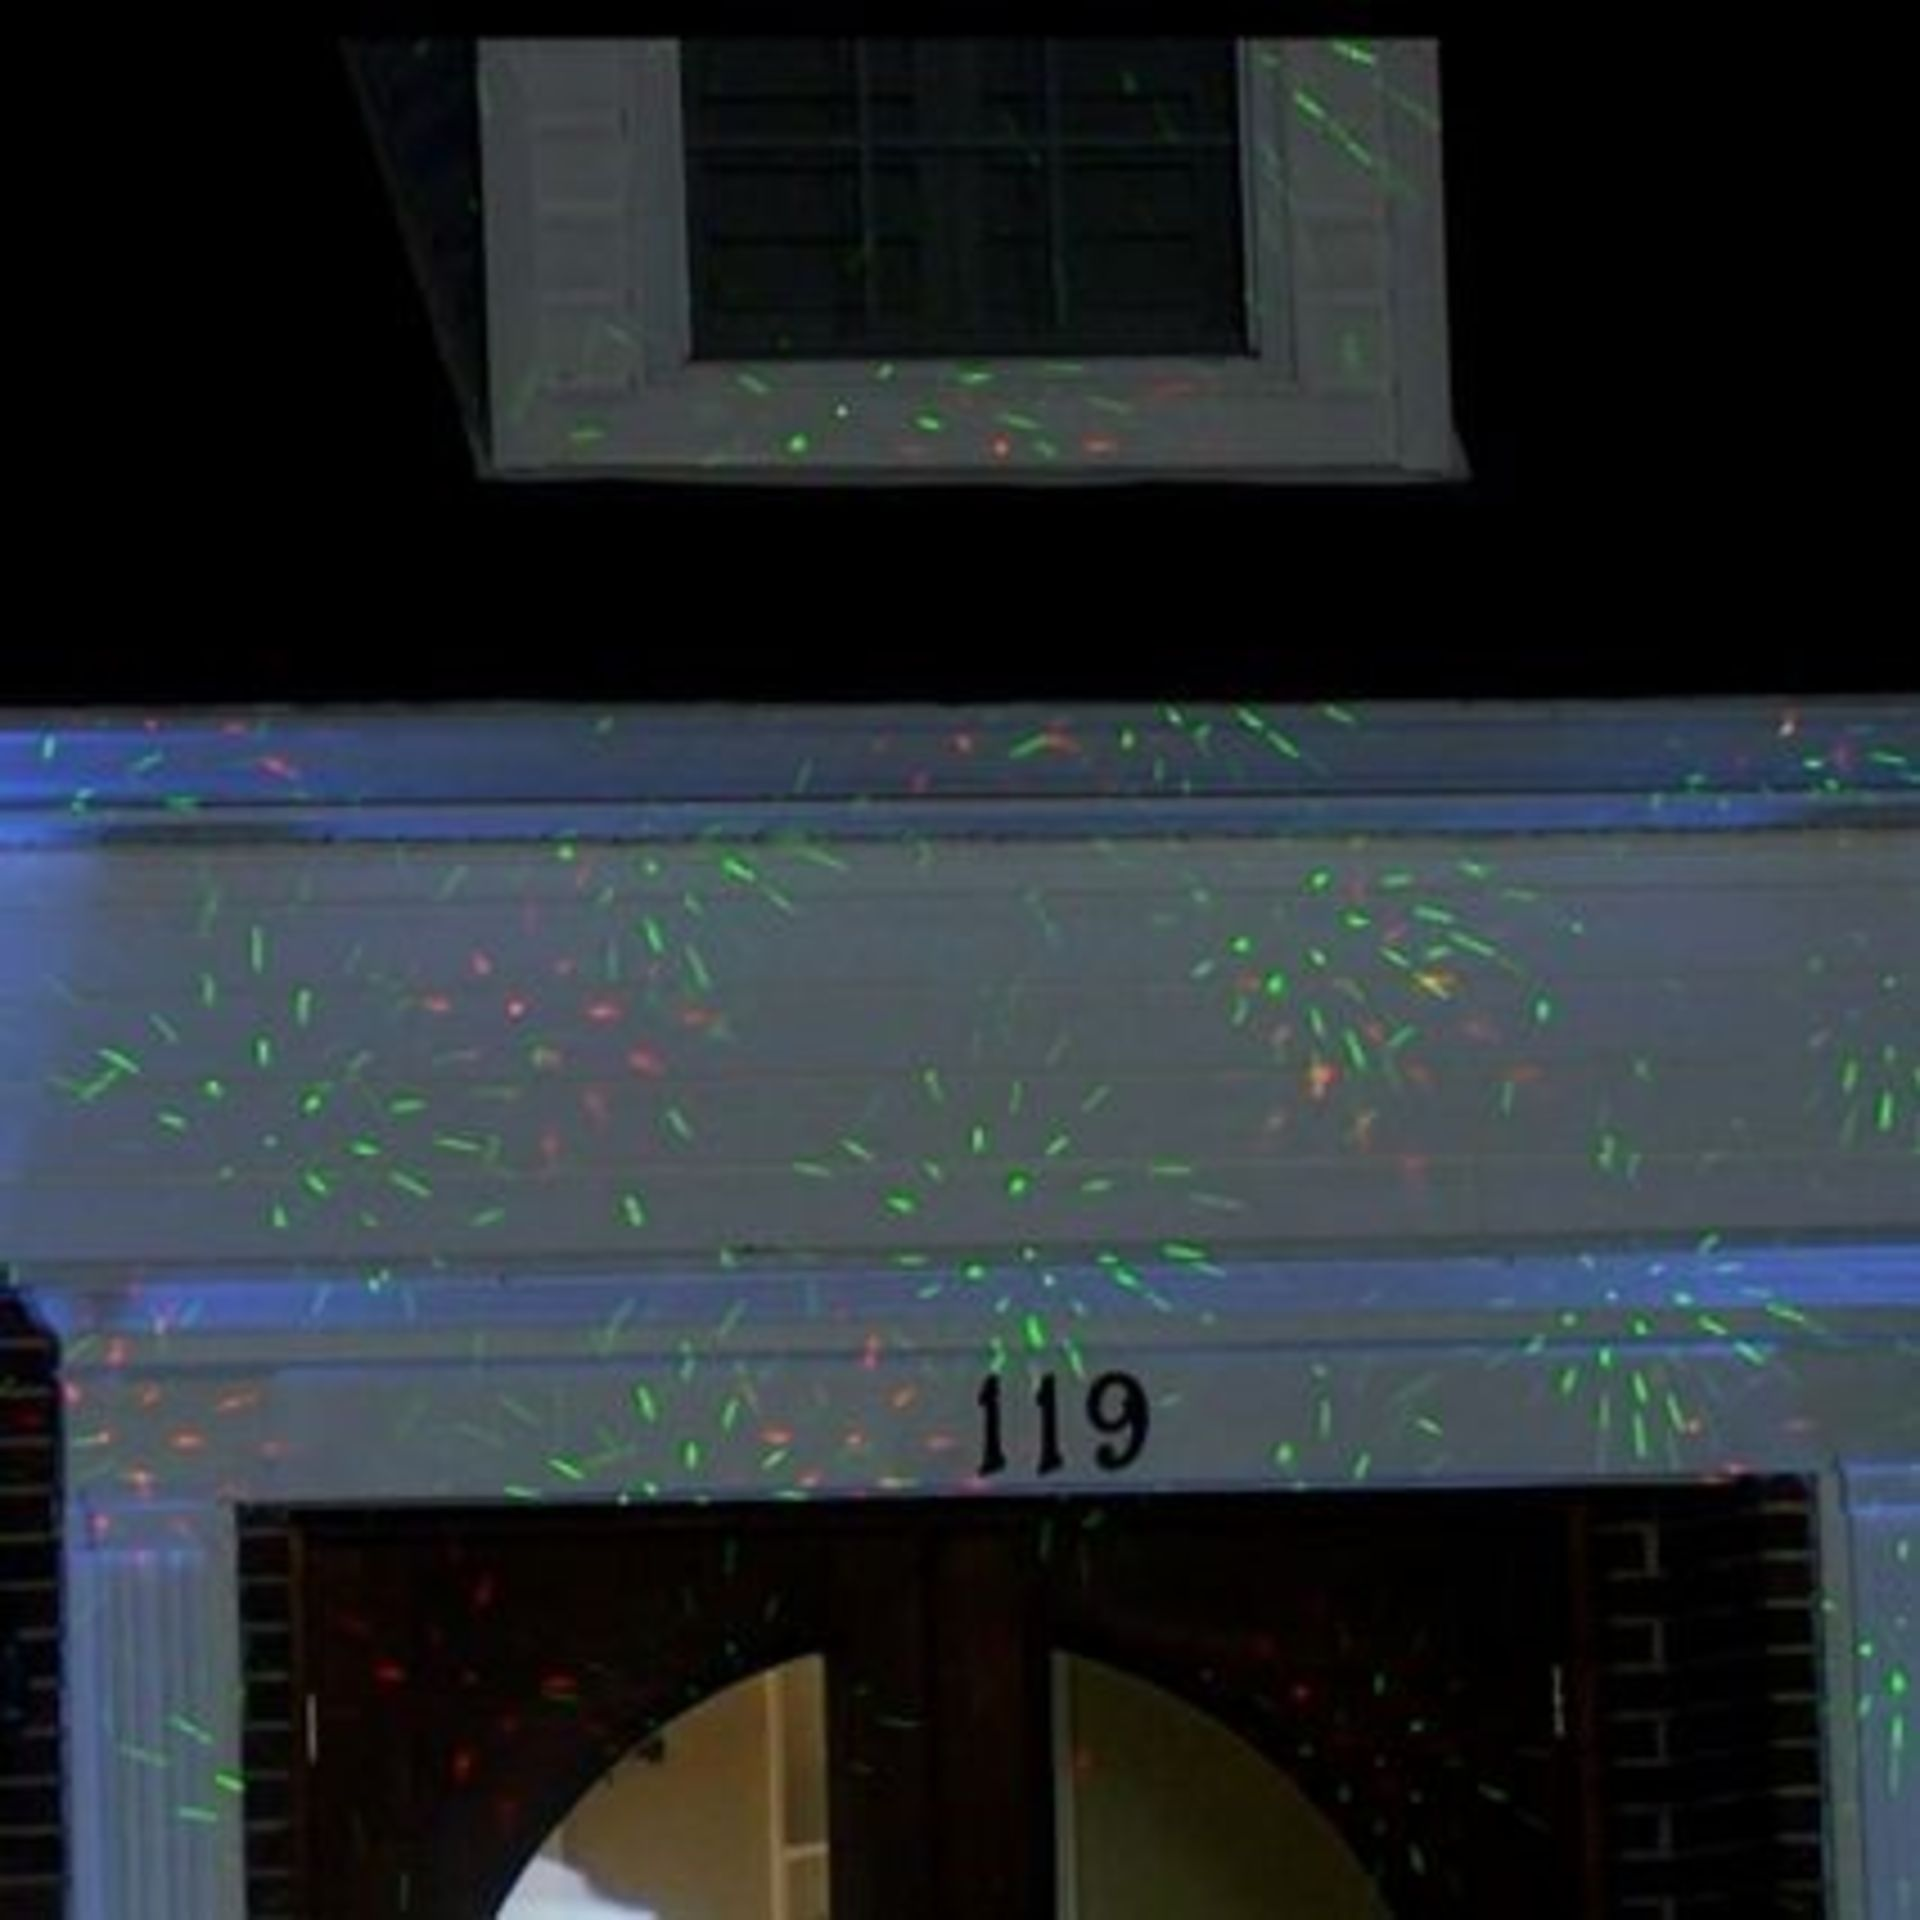   2X   BOX OF 6 STARTASTIC ACTION LASER PROJECTORS WITH 6 LASER MODES   NEW AND BOXED   SKU - Image 8 of 8